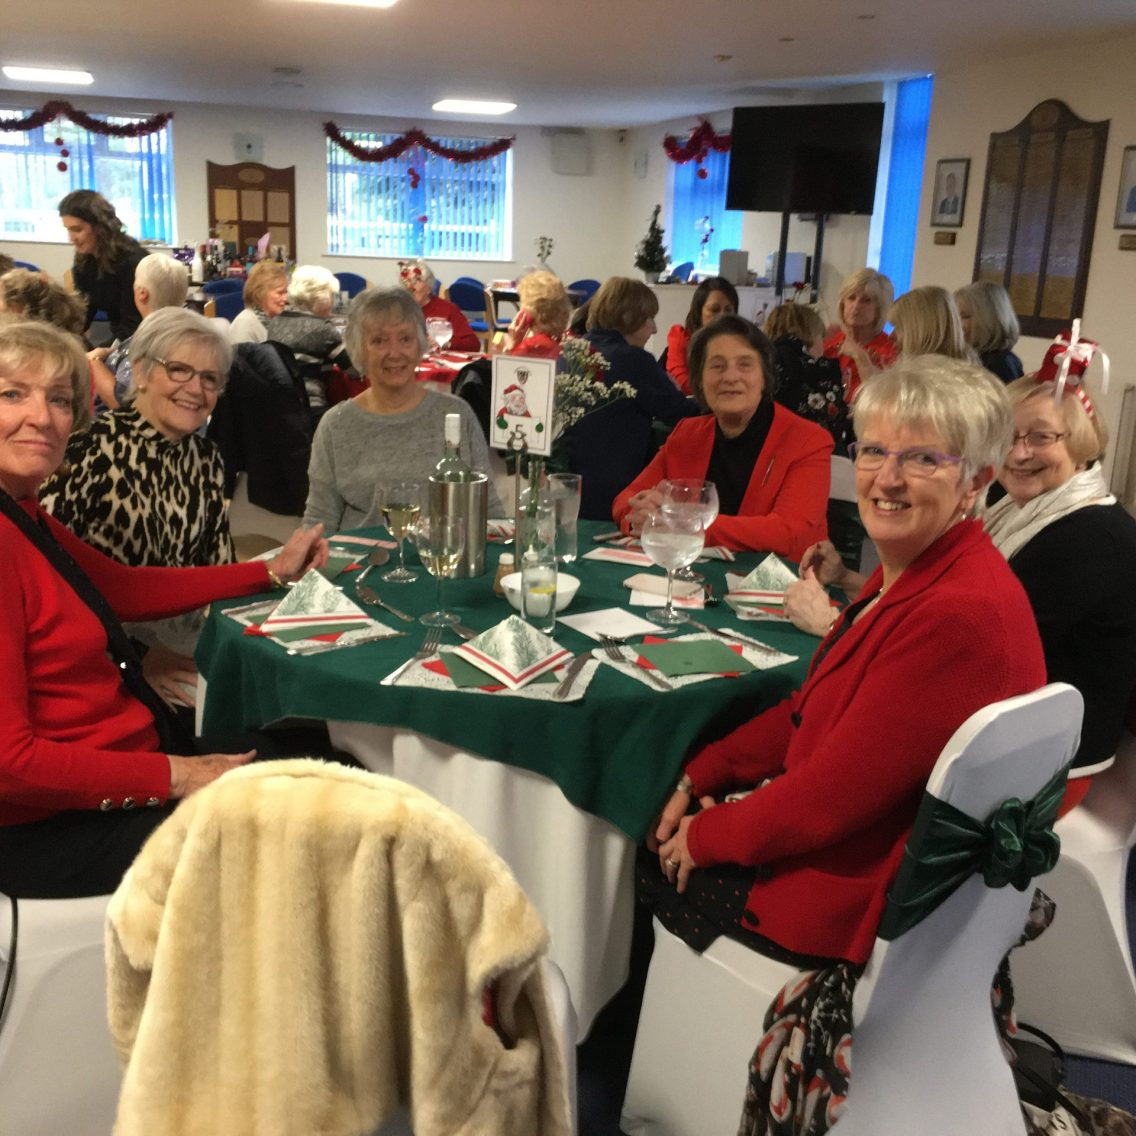 Cheadle ladies enjoying Christmas Lunch together